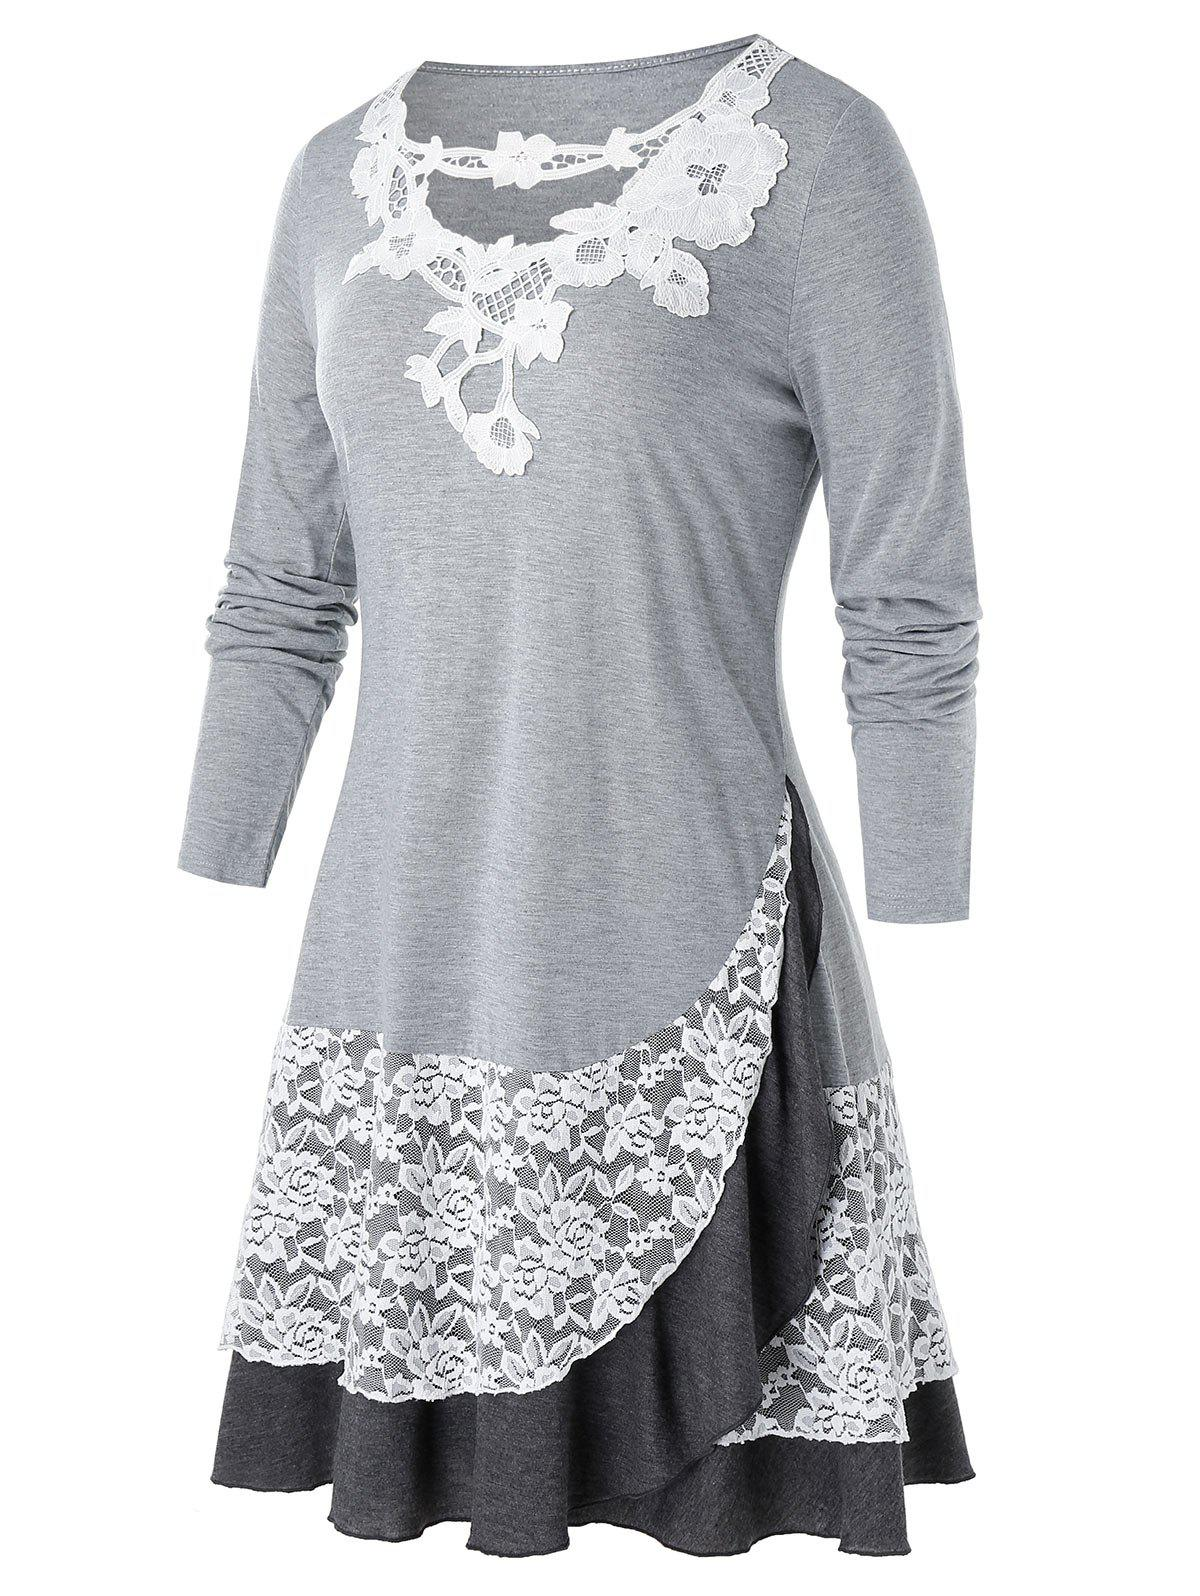 Hot Plus Size Applique Lace Panel Flounce Long Sleeve Tee